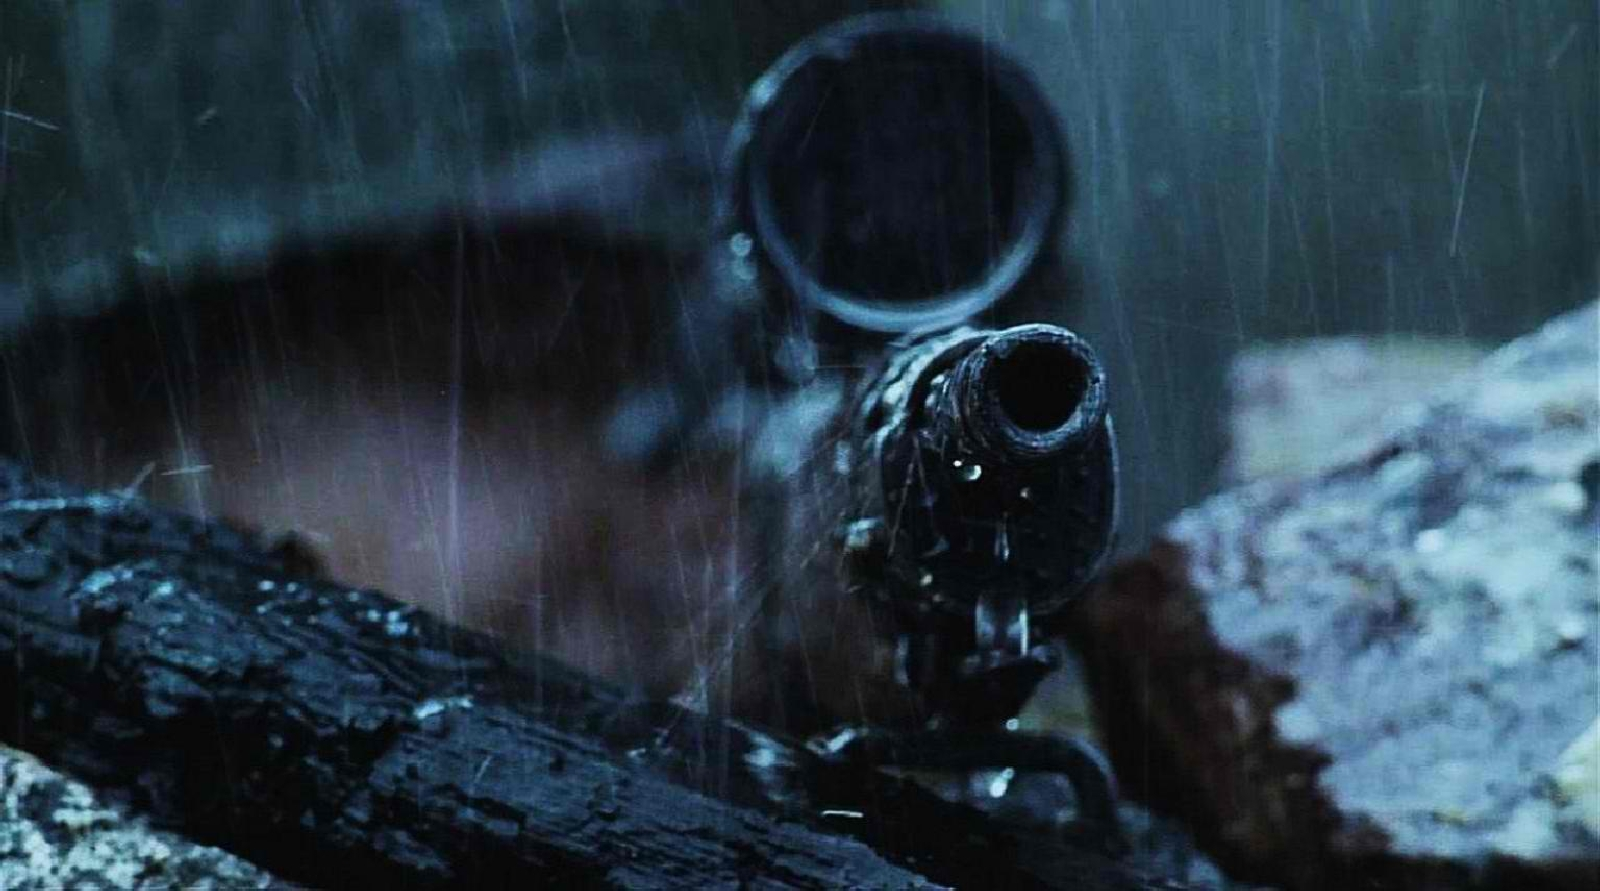 Sniper Rifle Snipers Artwork Wallpapers Hd Desktop And: Sniper Rifle Wallpaper And Background Image